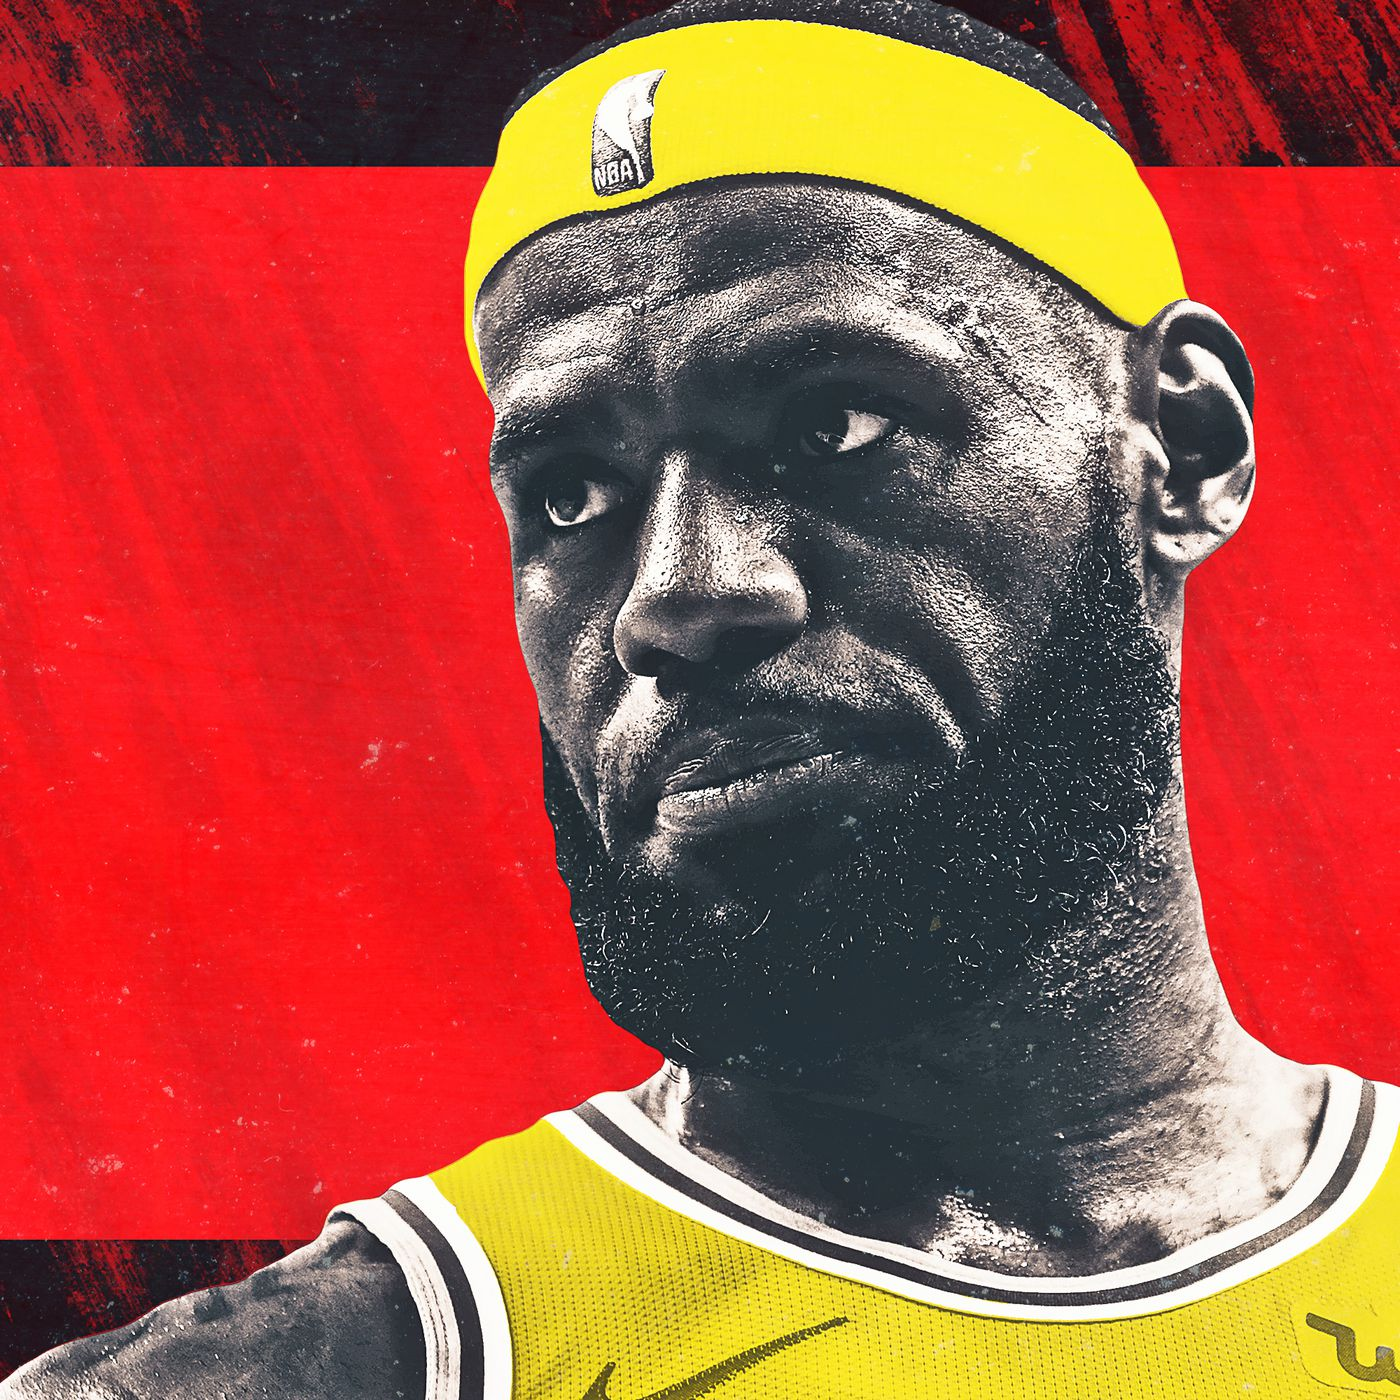 theringer.com - Paolo Uggetti - LeBron James and the NBA's Now Messier Situation in China